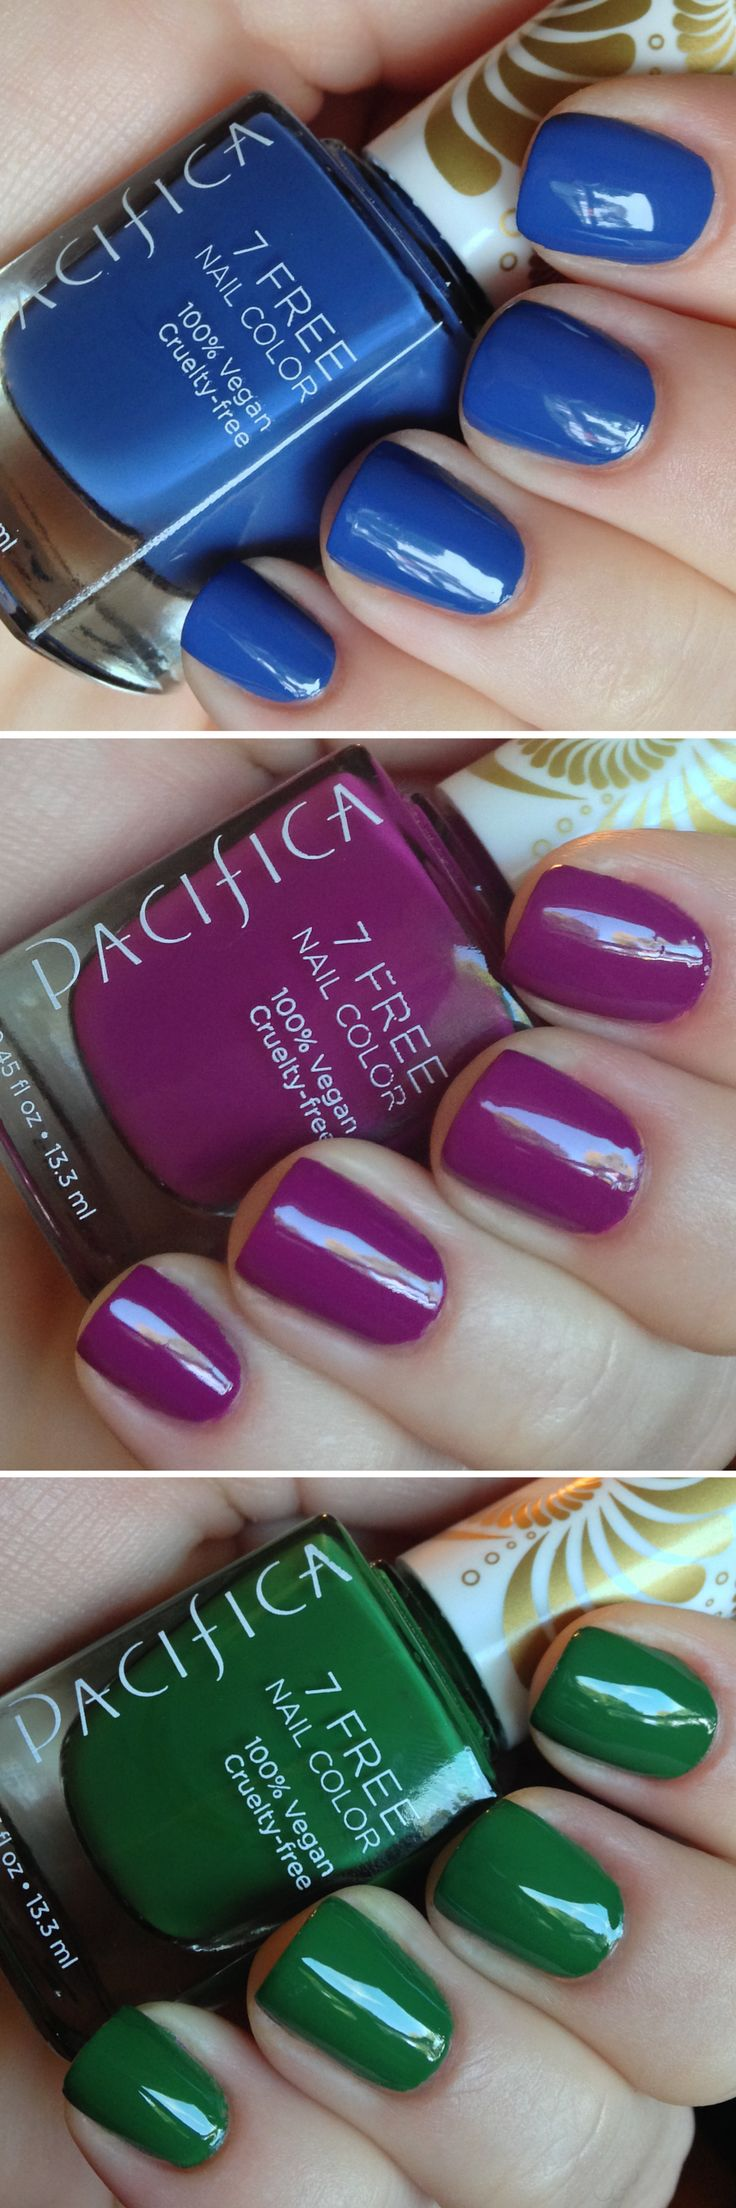 17 Best Ideas About Fall Nail Polish On Pinterest